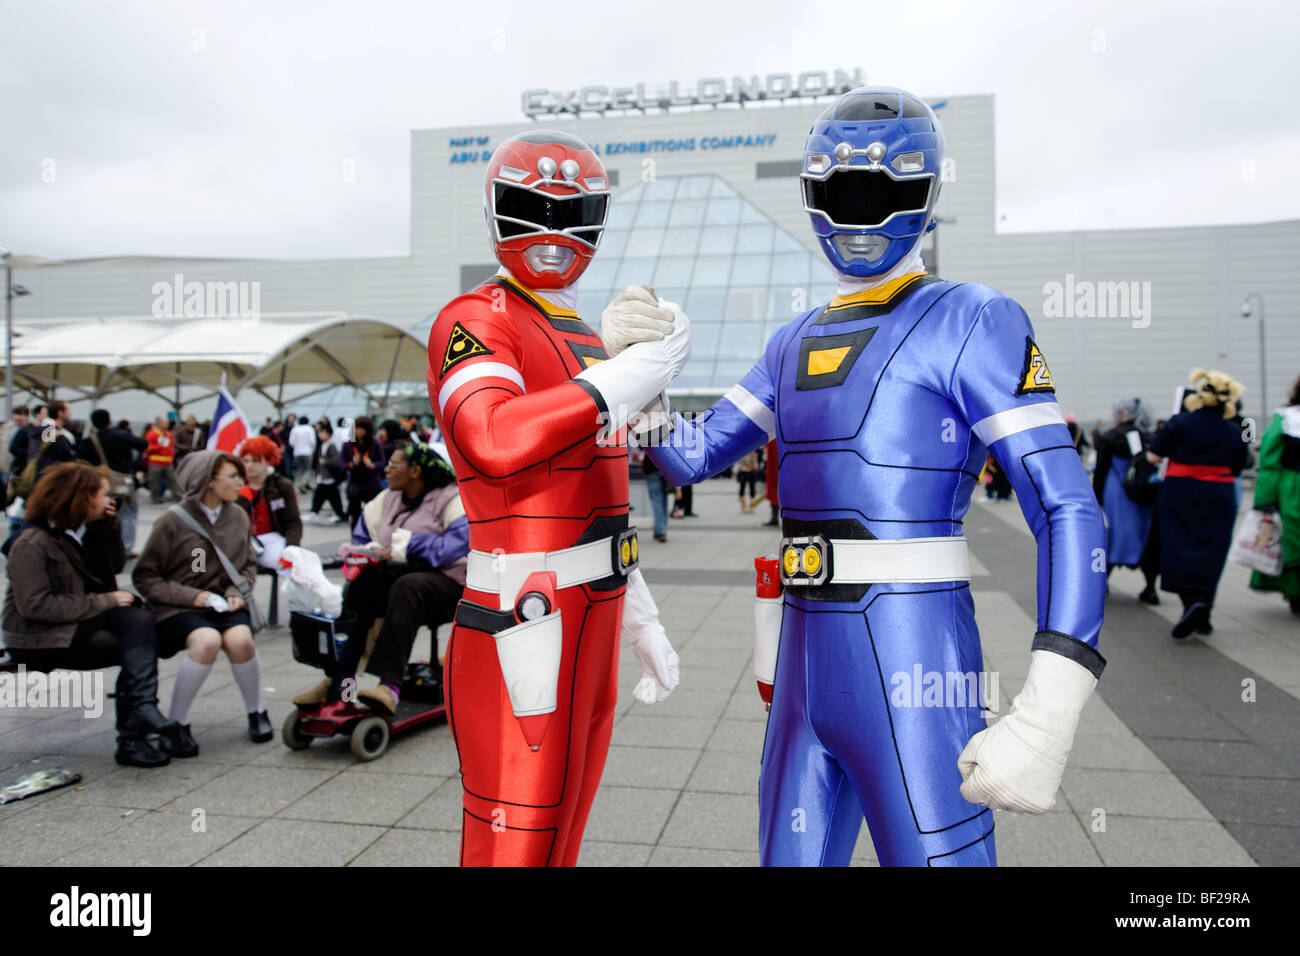 Fans dressed as their favorite costume characters from comic books, animations and video games. London MCM expo. - Stock Image